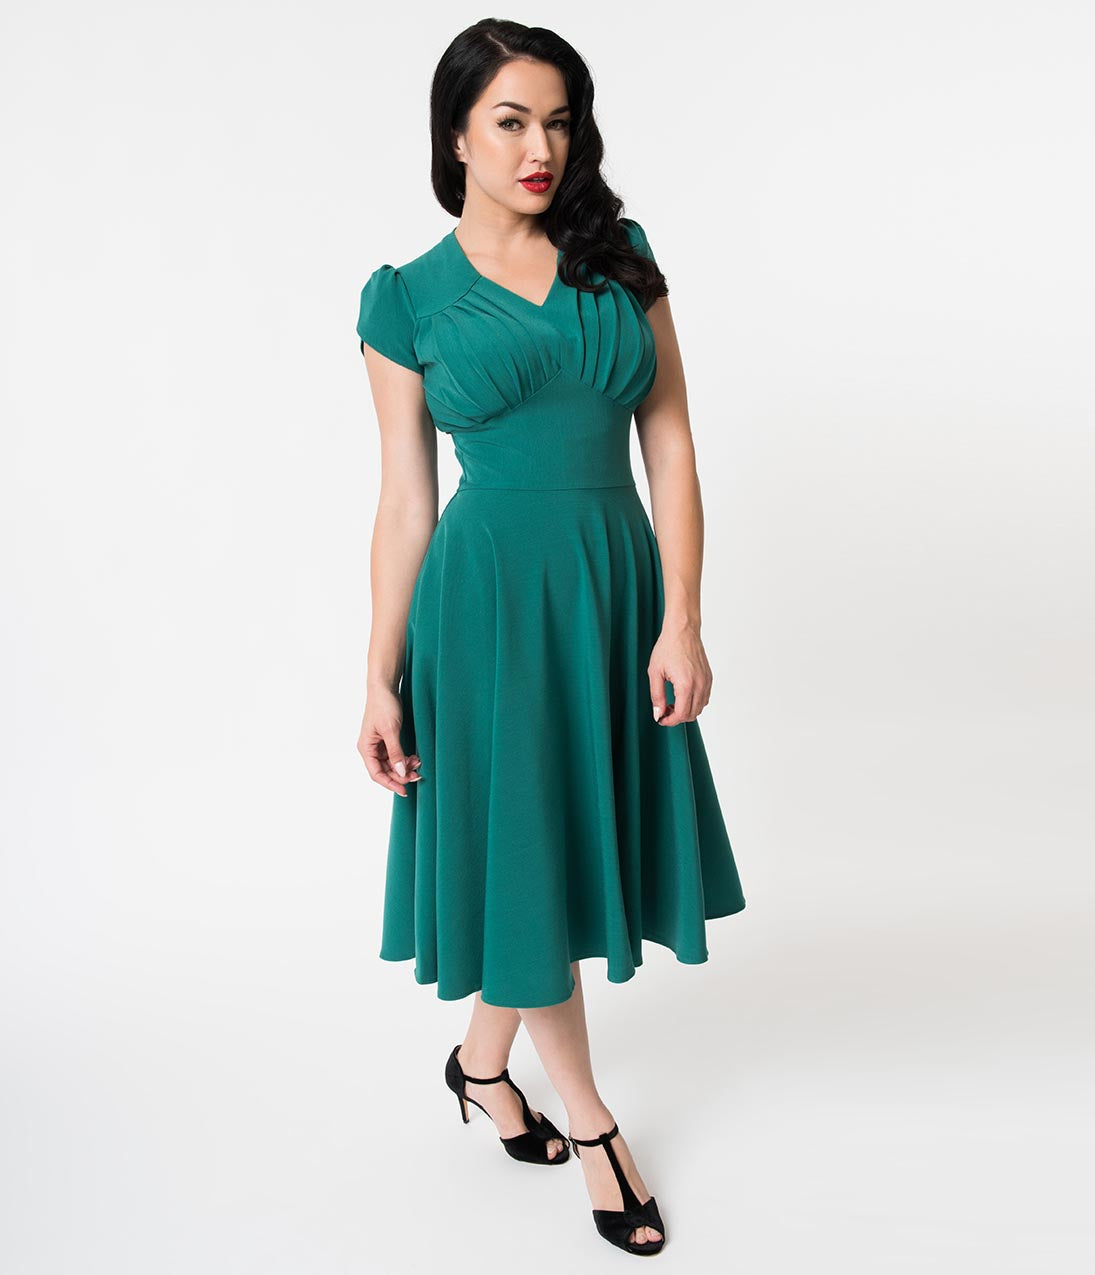 1950s Housewife Dress | 50s Day Dresses Retro Style Emerald Green Petal Sleeve Pleated Swing Dress $74.00 AT vintagedancer.com